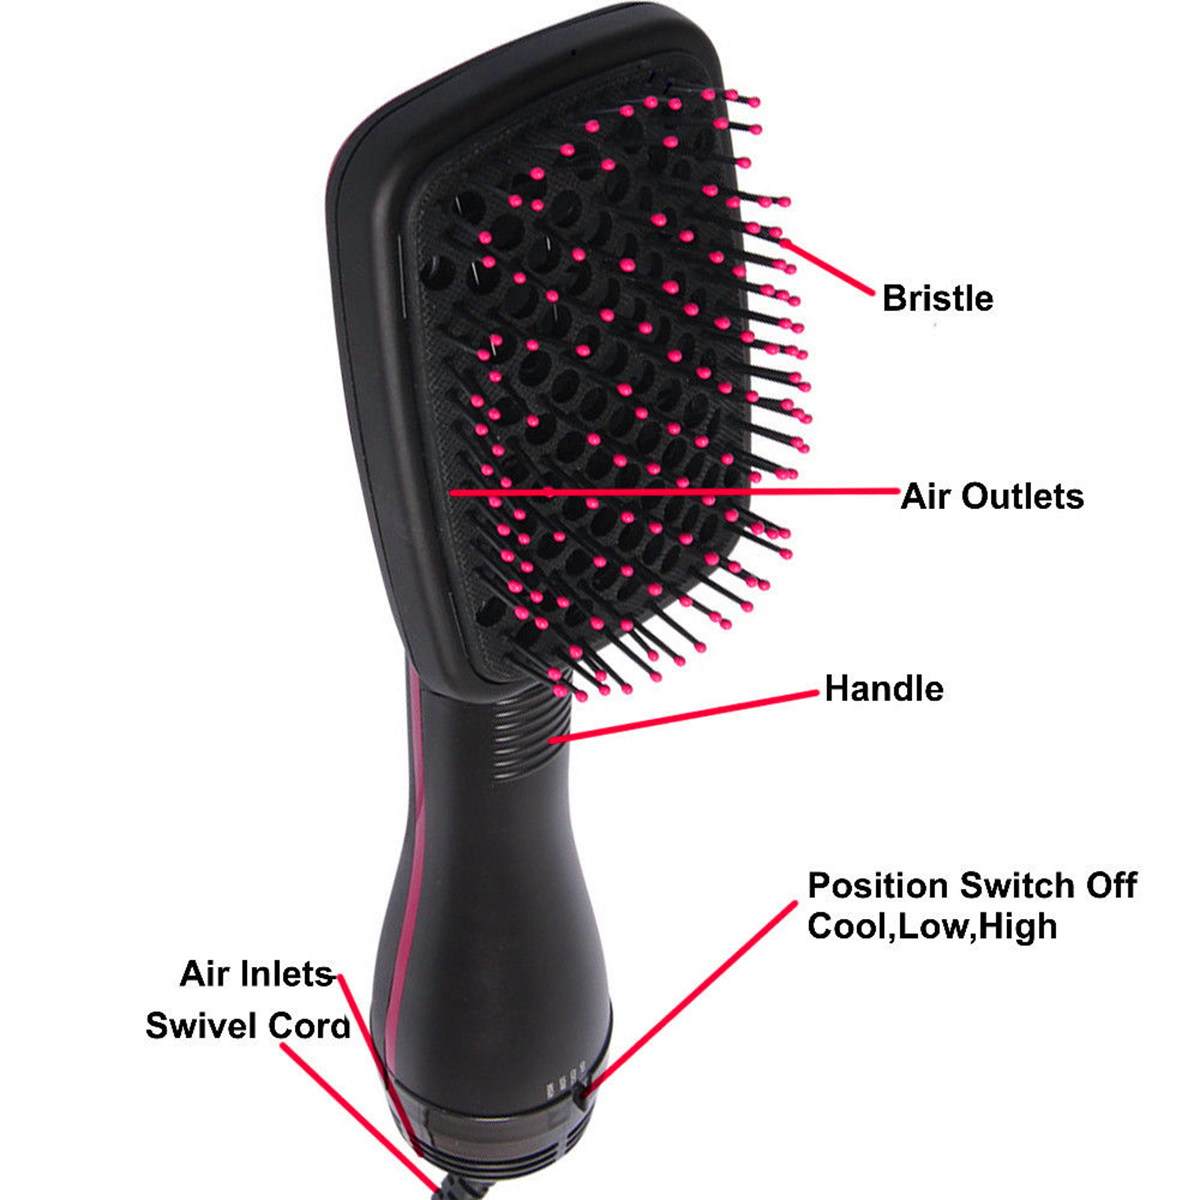 2 in 1 Smoothing Hair Dryer & Paddle Brush